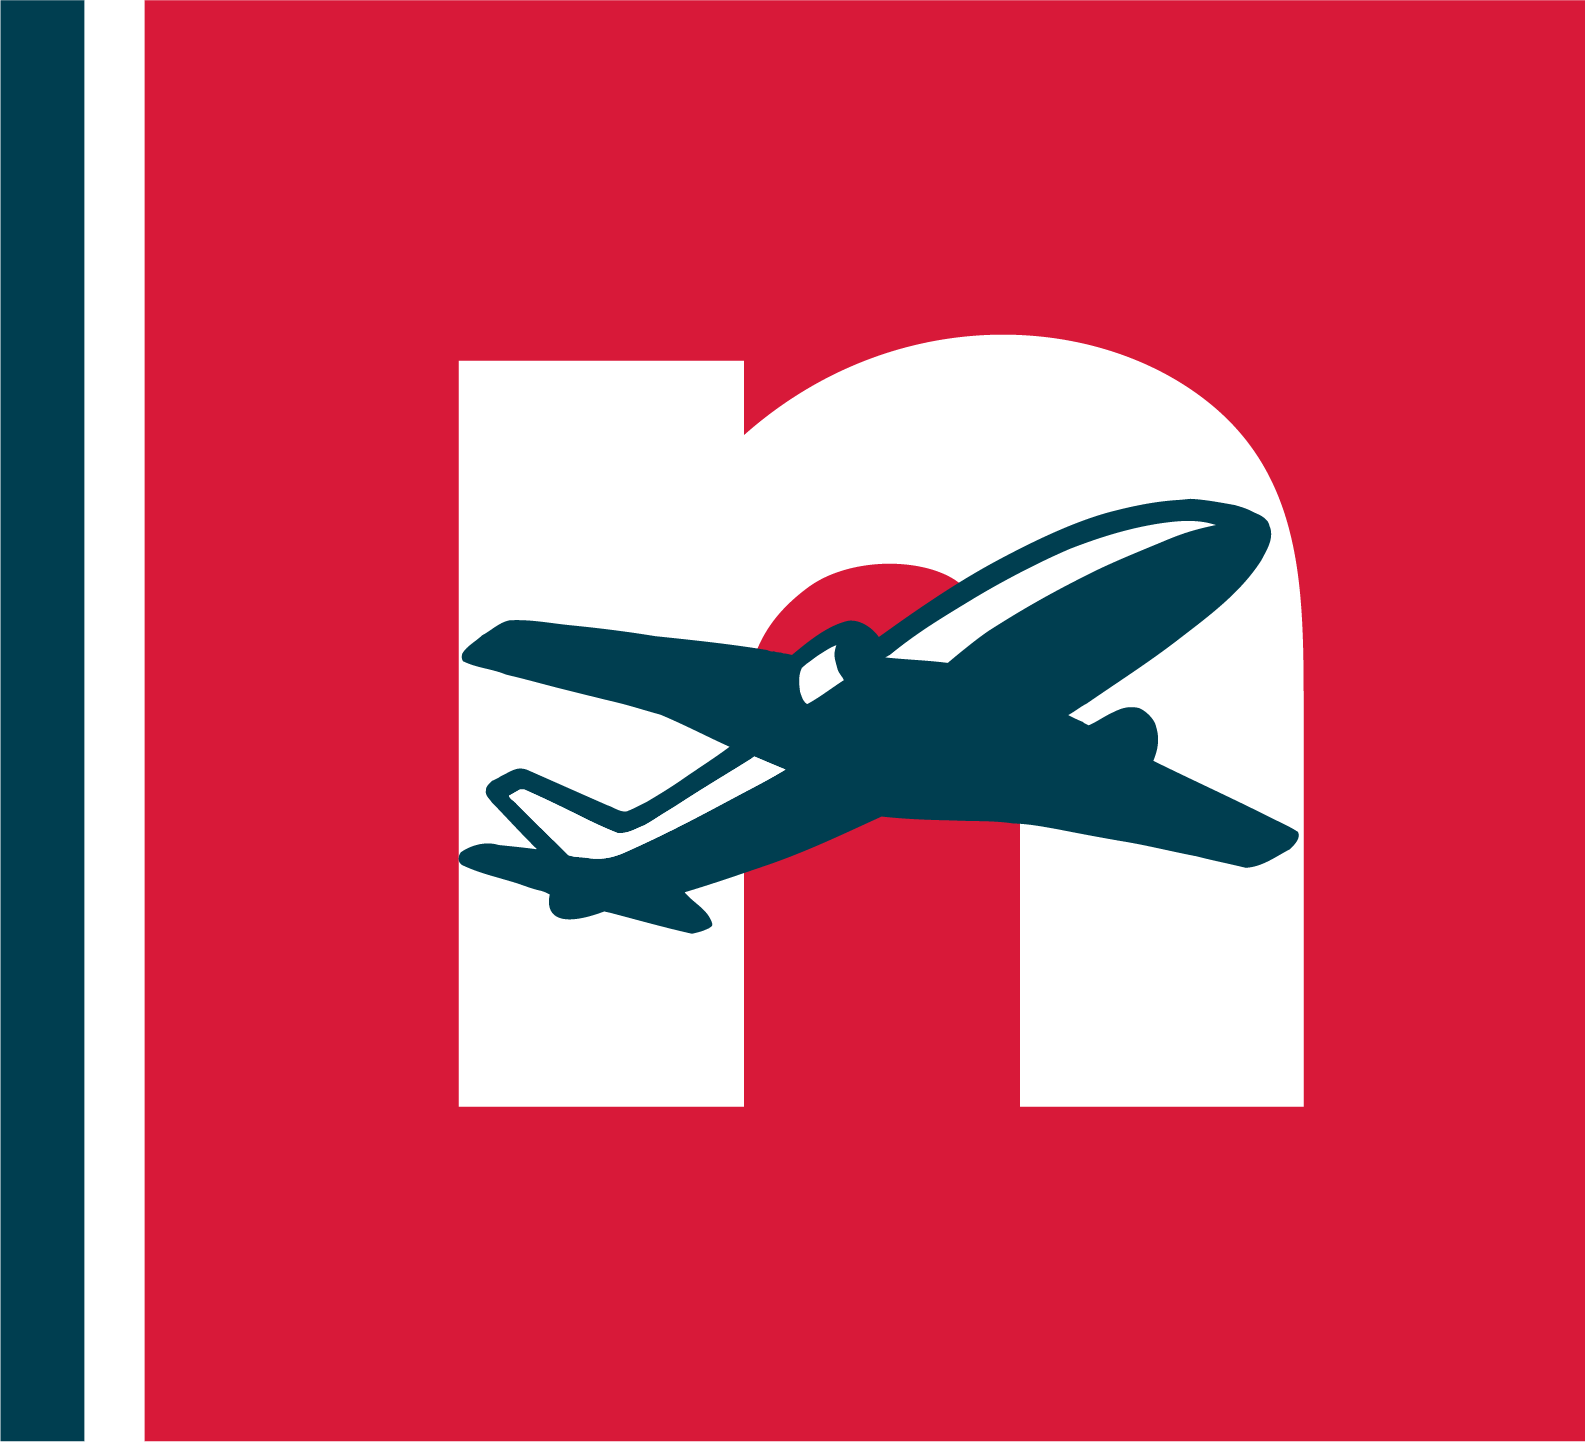 Norwegian Long Haul